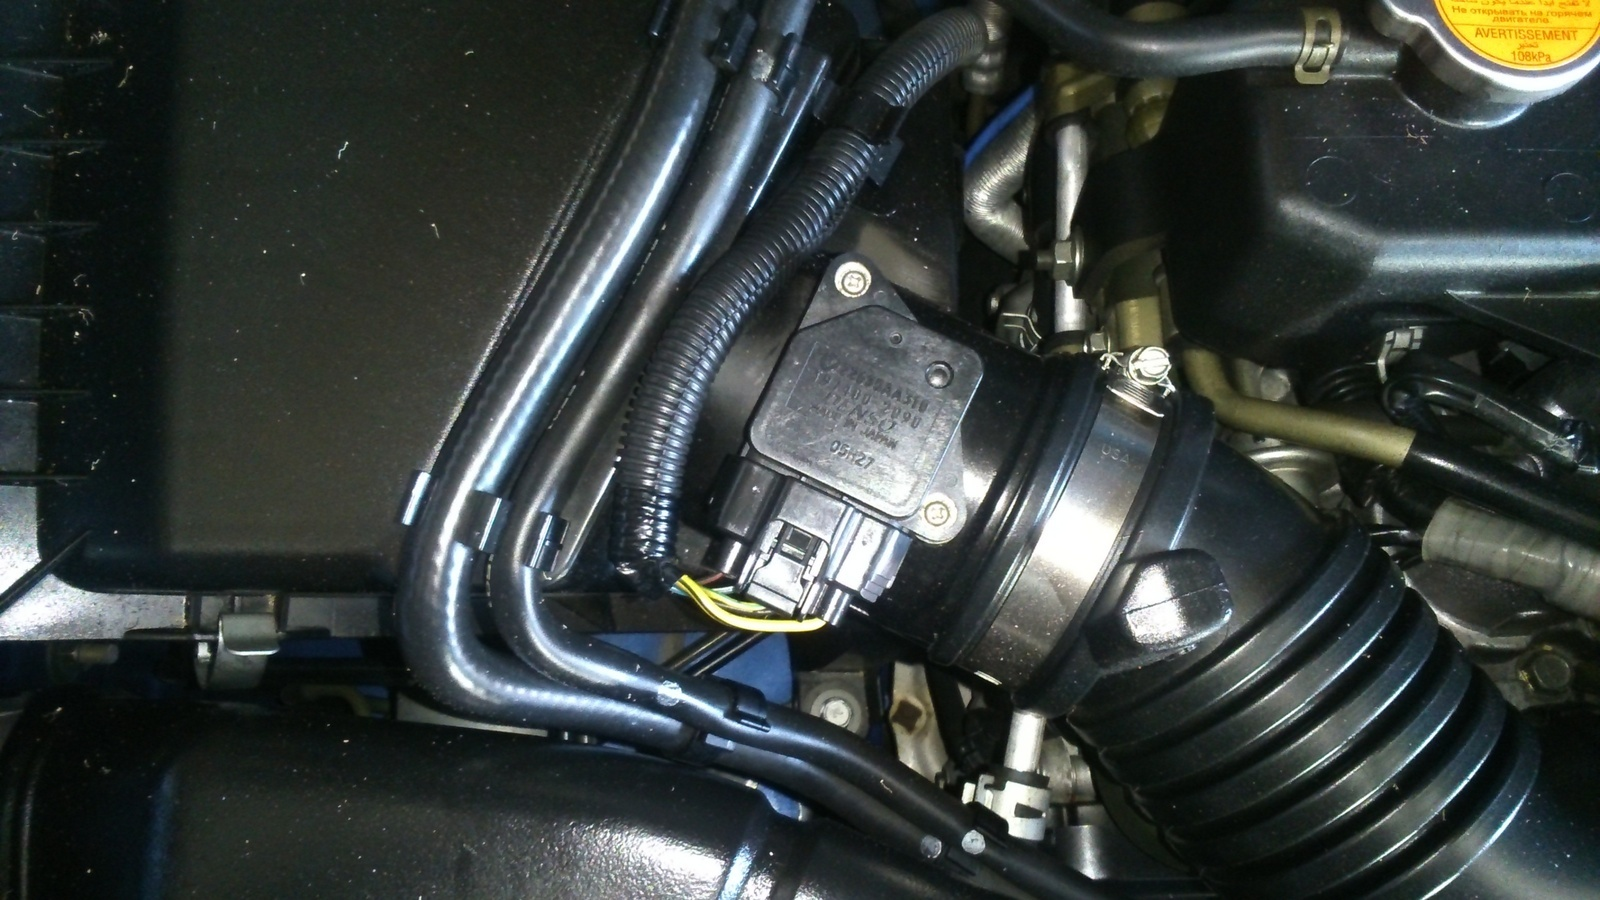 2010 Forester Fuel Filter Location Wiring Library 2006 Subaru